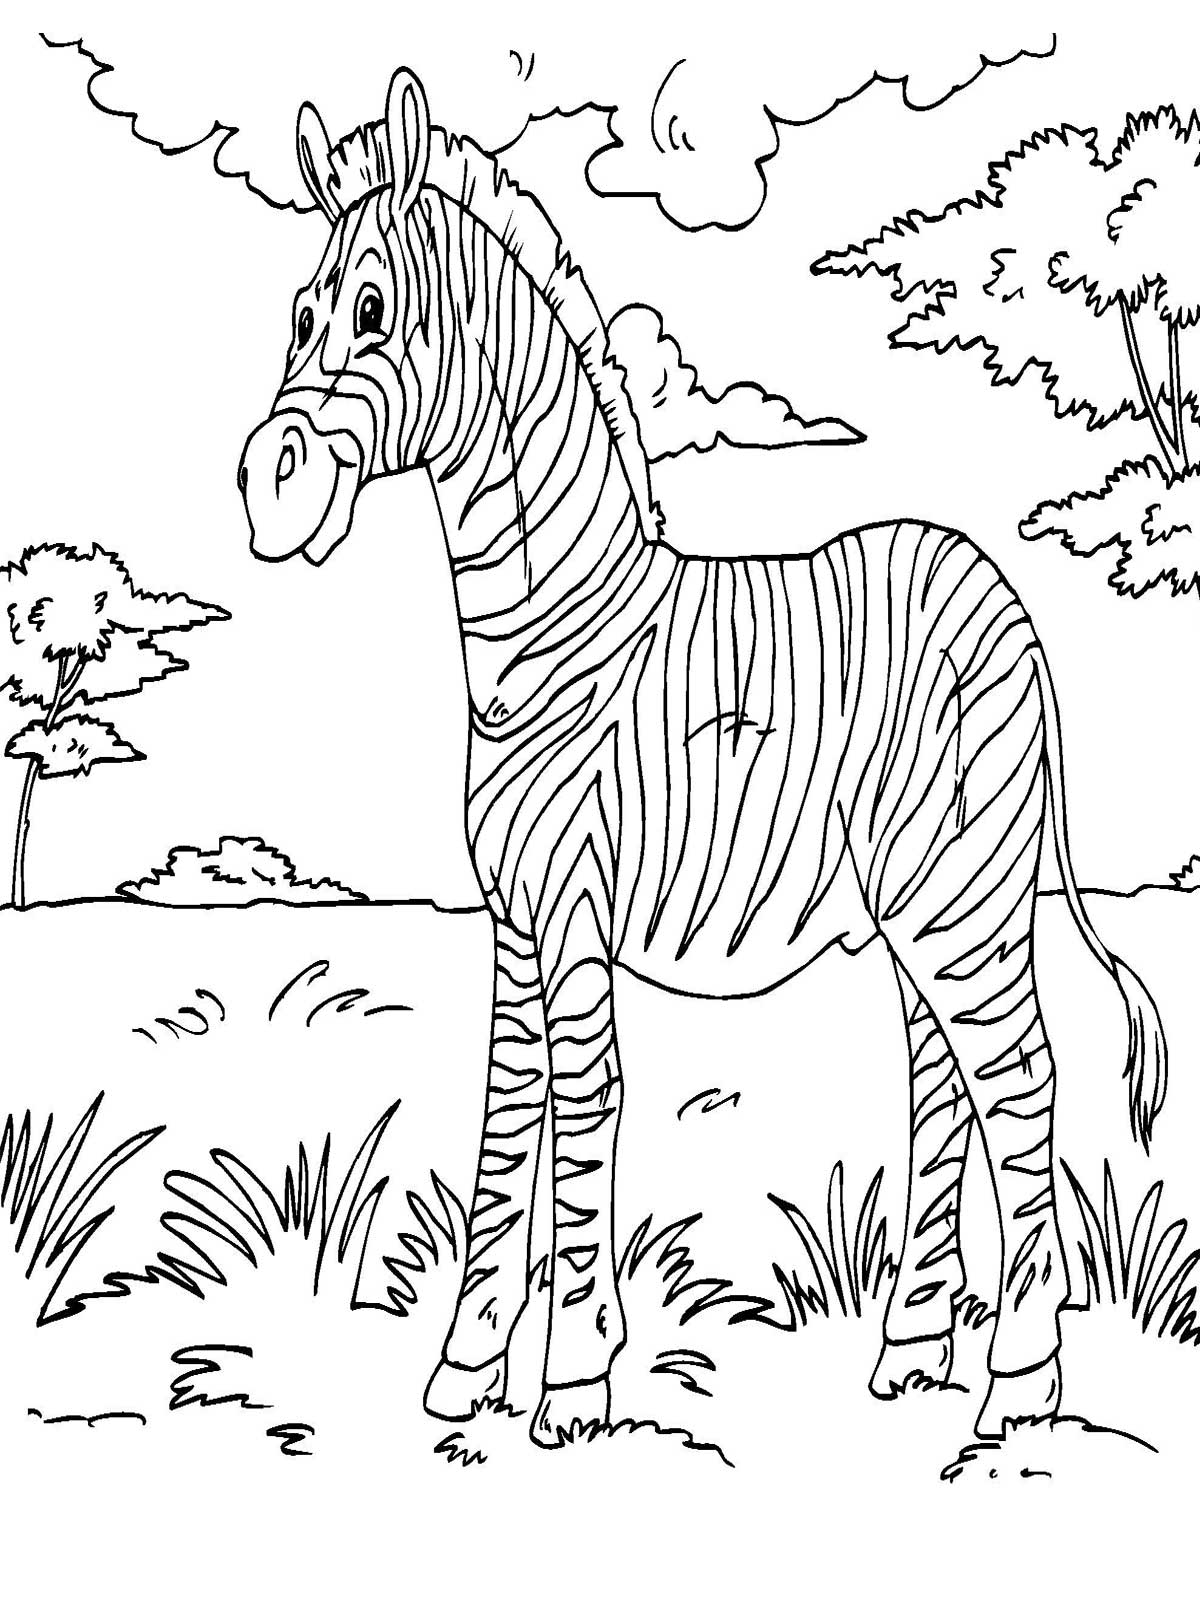 zoo animals coloring pages zebra - photo#29